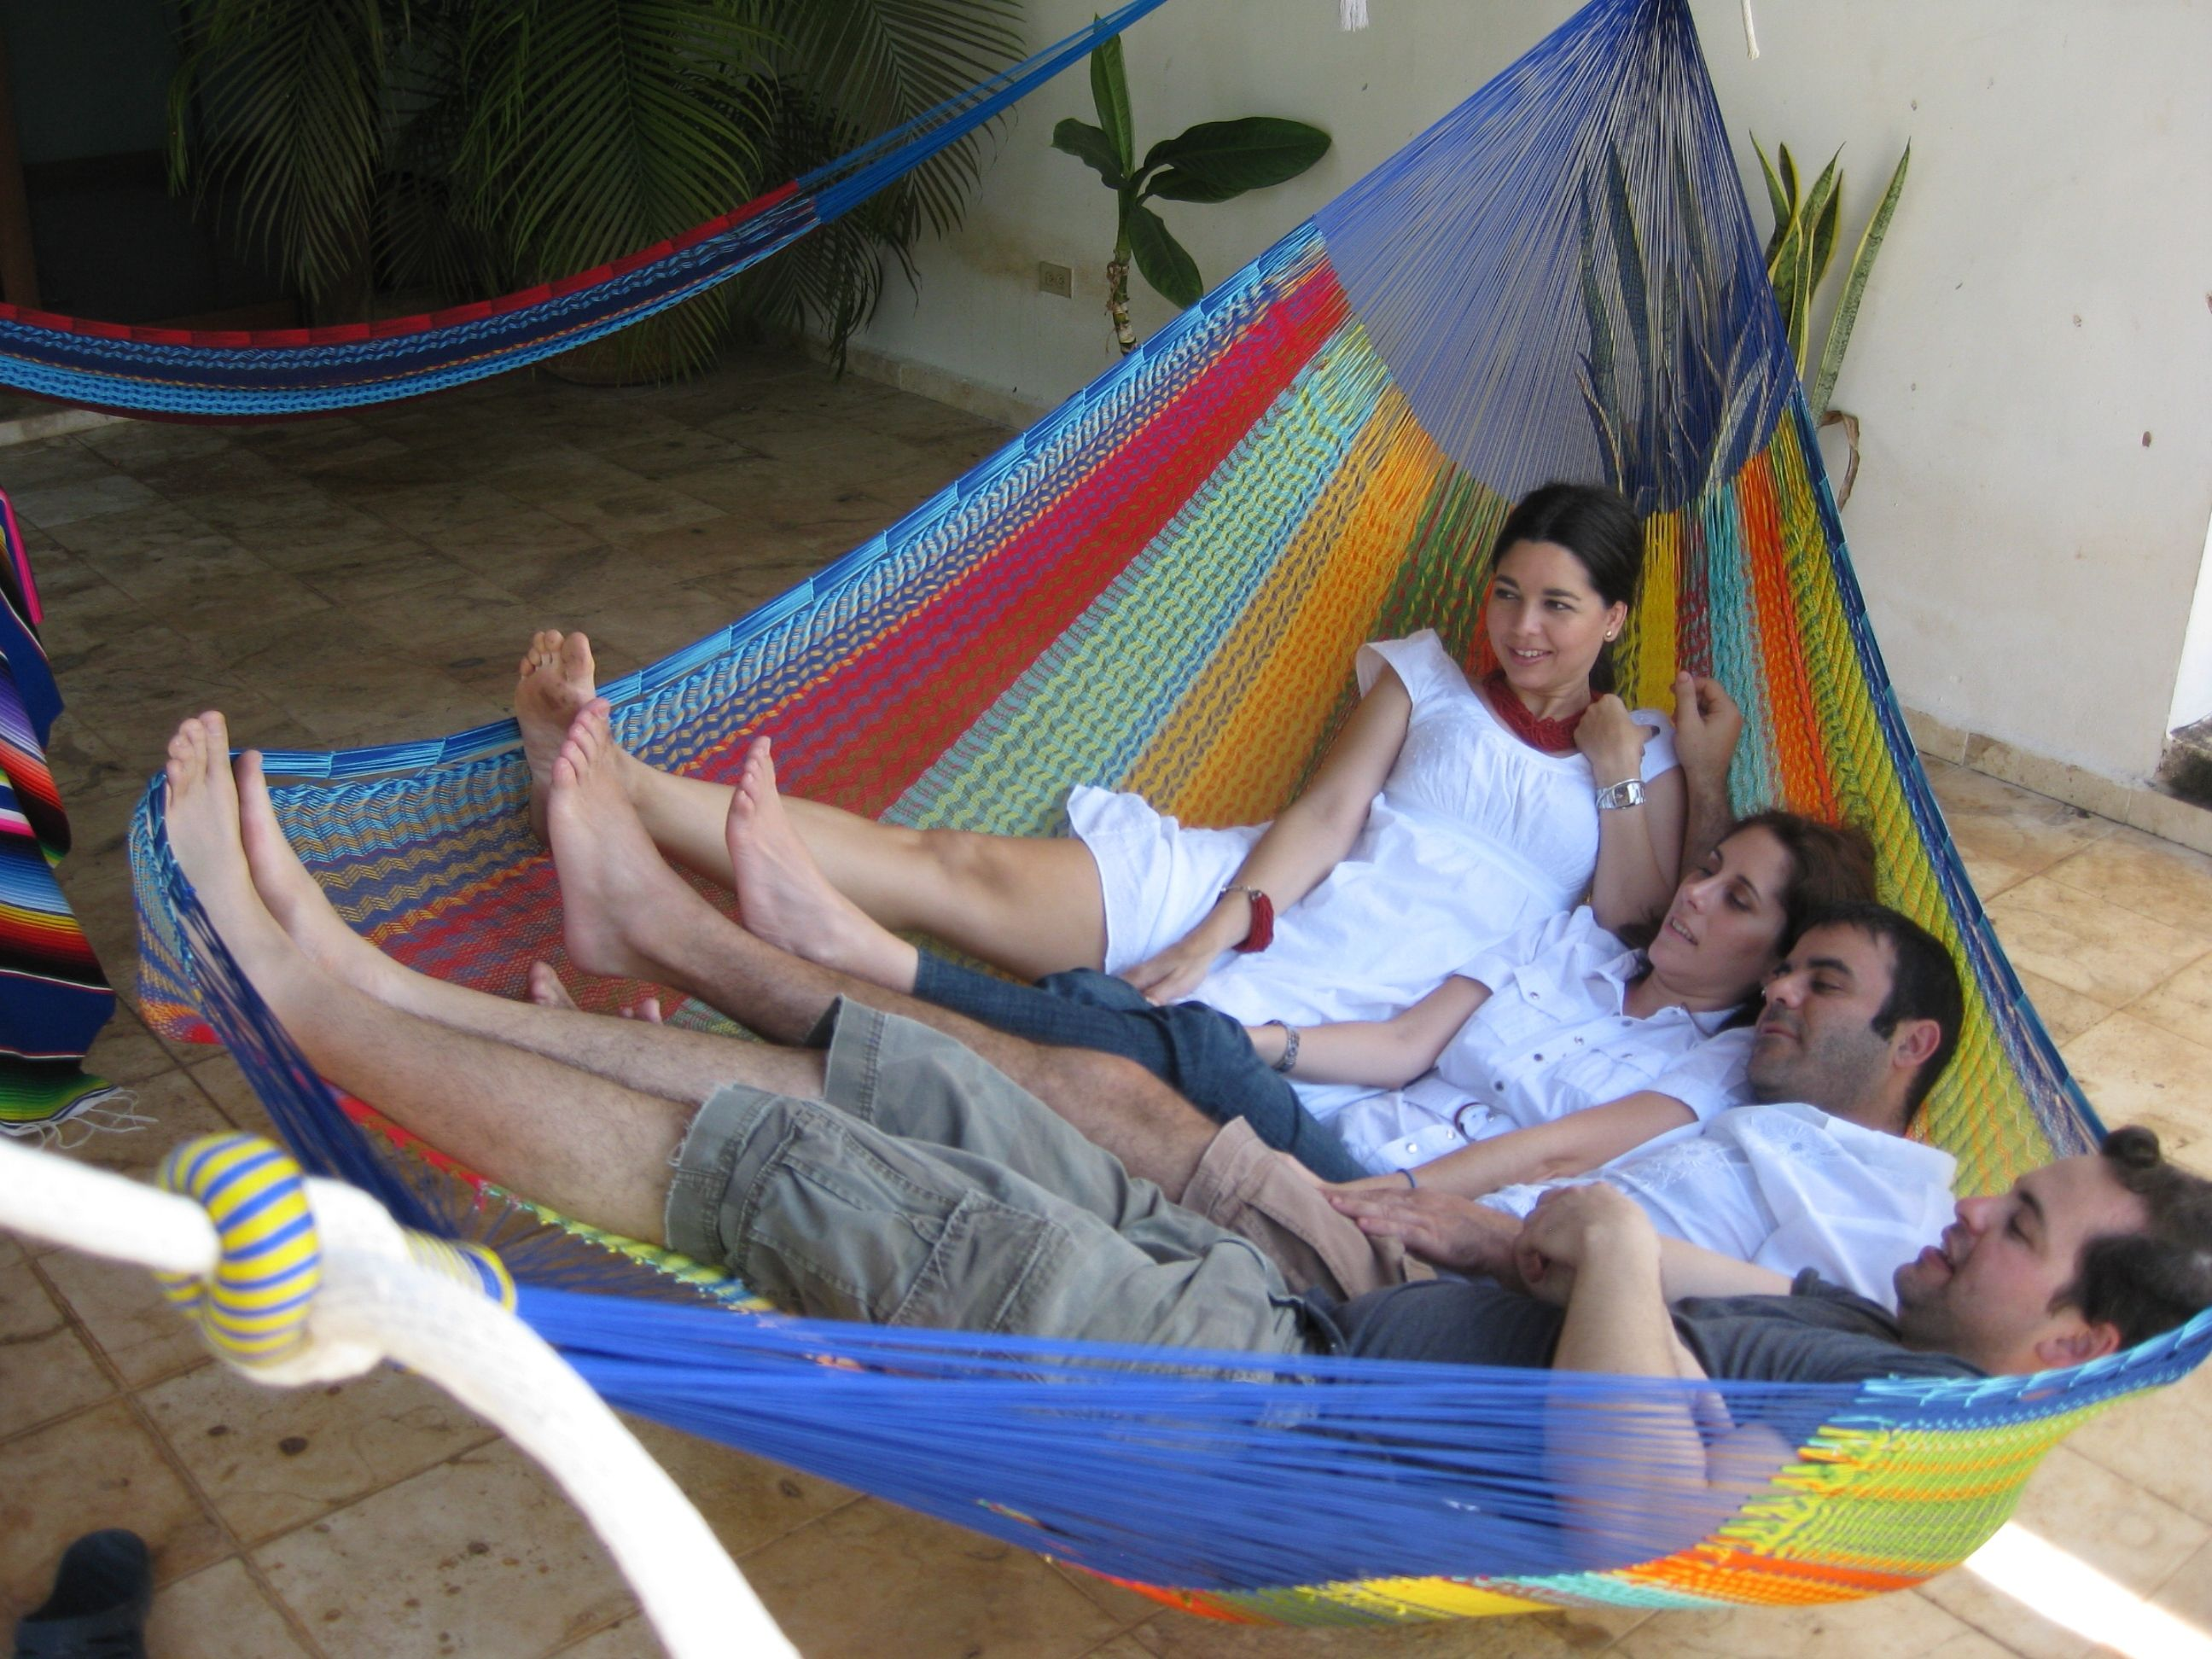 ca6991683 One of the most popular hammocks is the King Size Mexican hammock. Just  look how